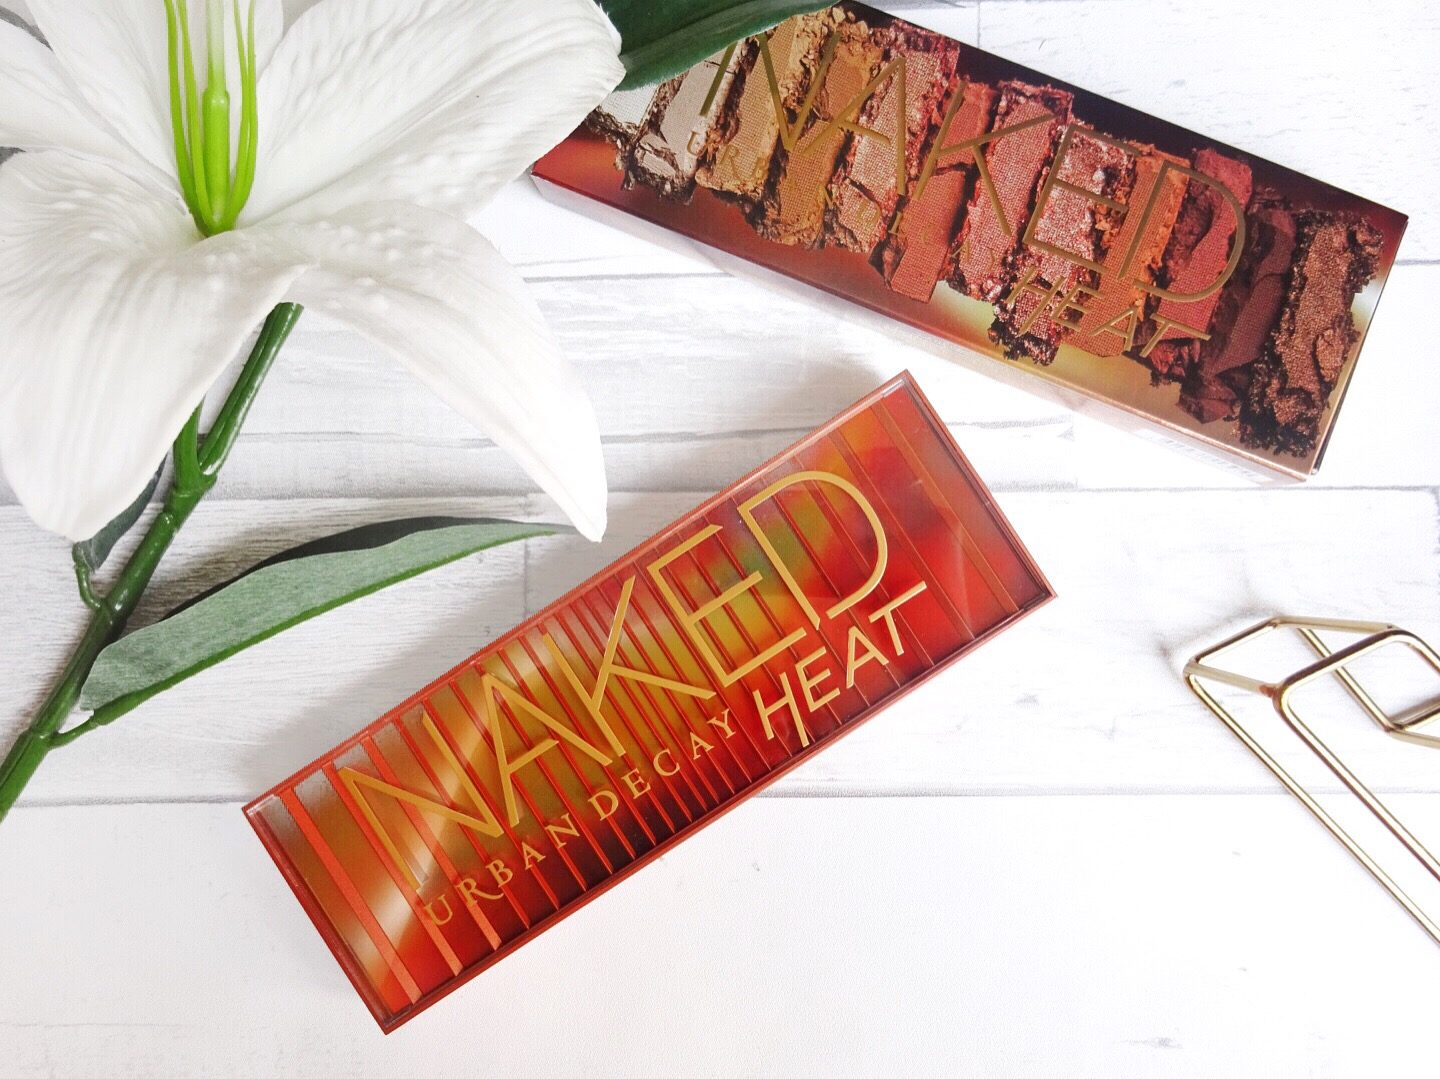 Urban Decay Naked Heat Palette REVIEW + LOOKS